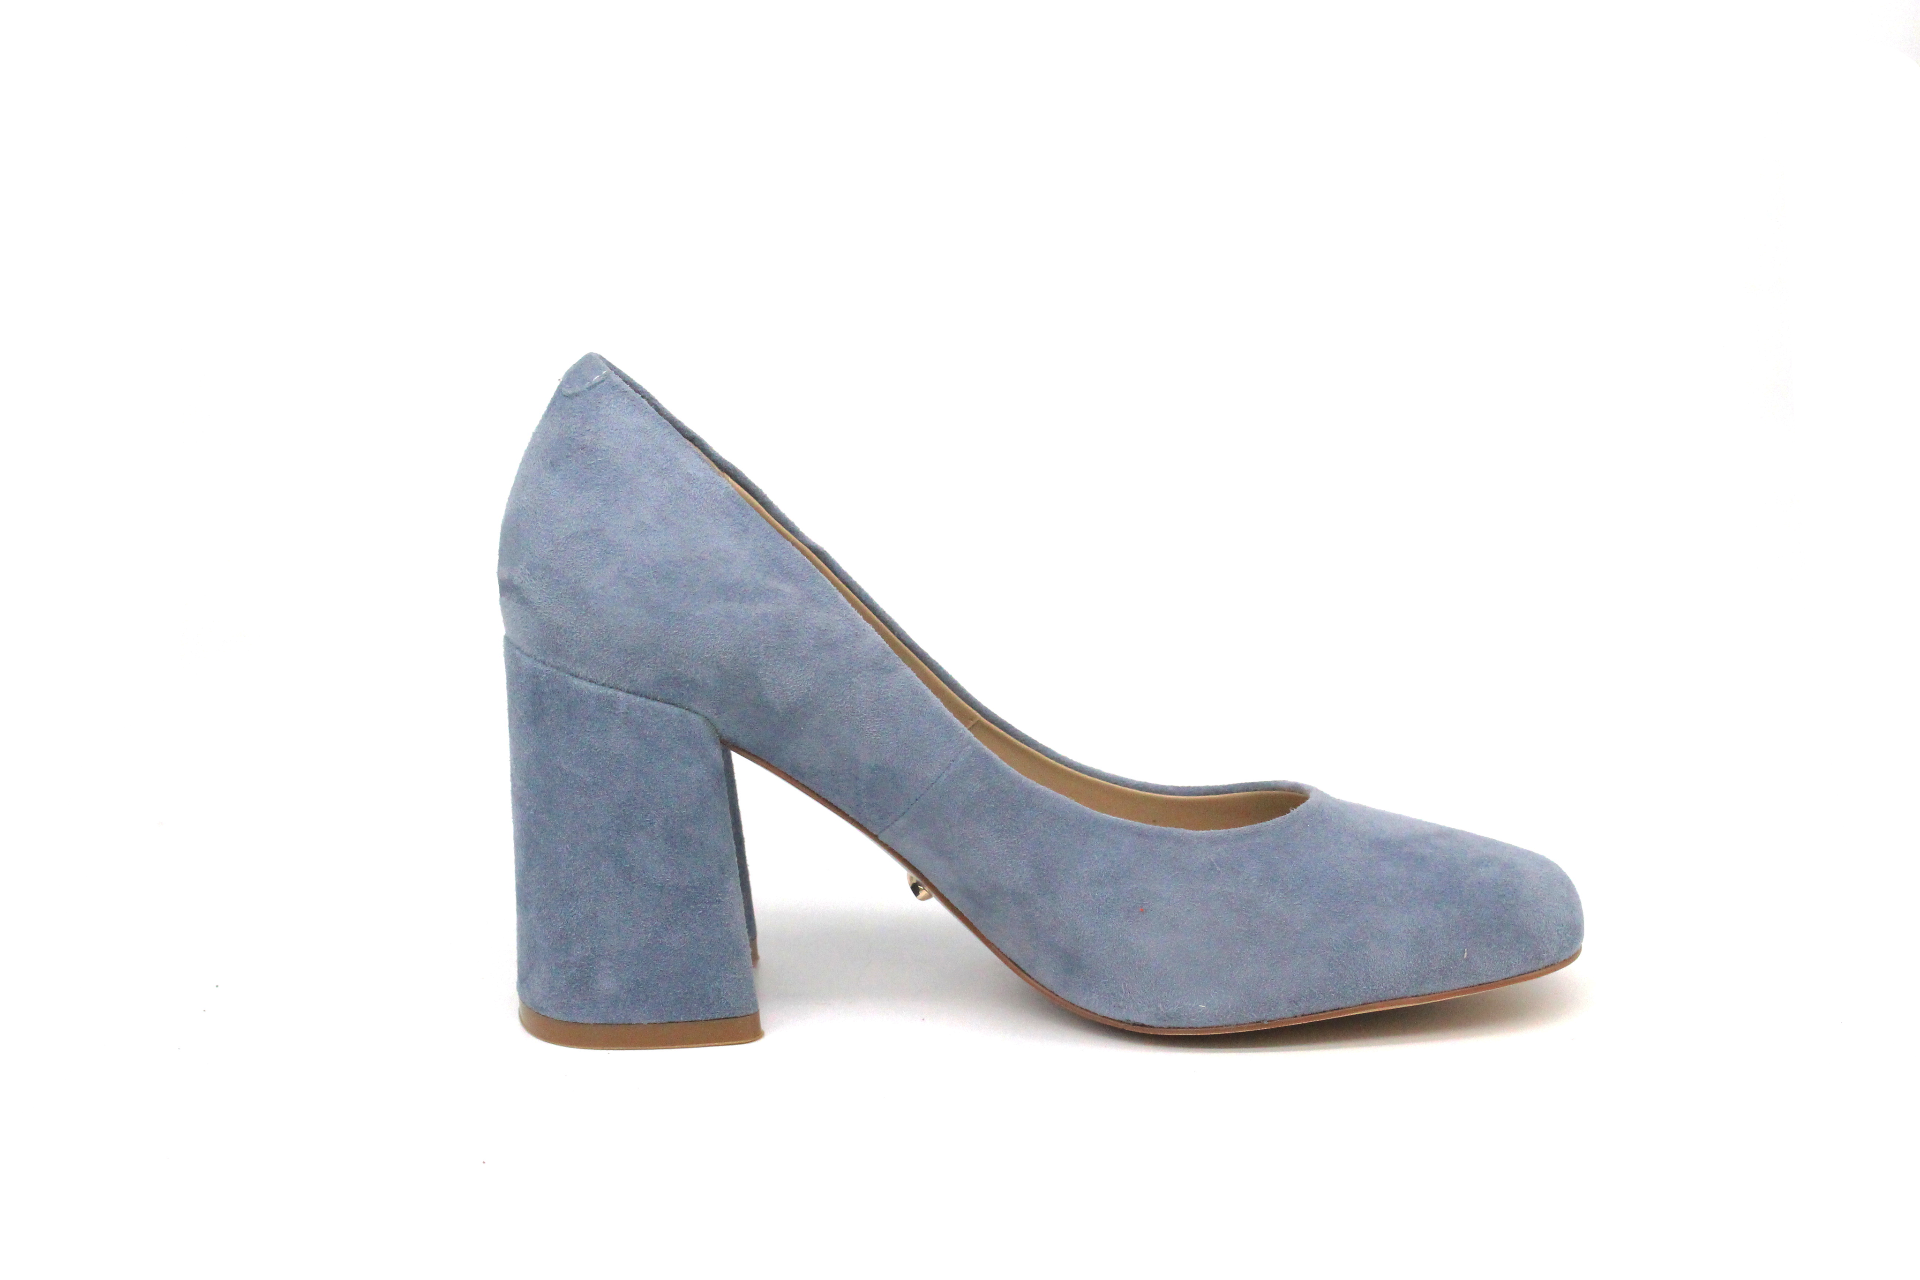 large discount best supplier new york 4 inch Heels - Blue Suede Block Heels